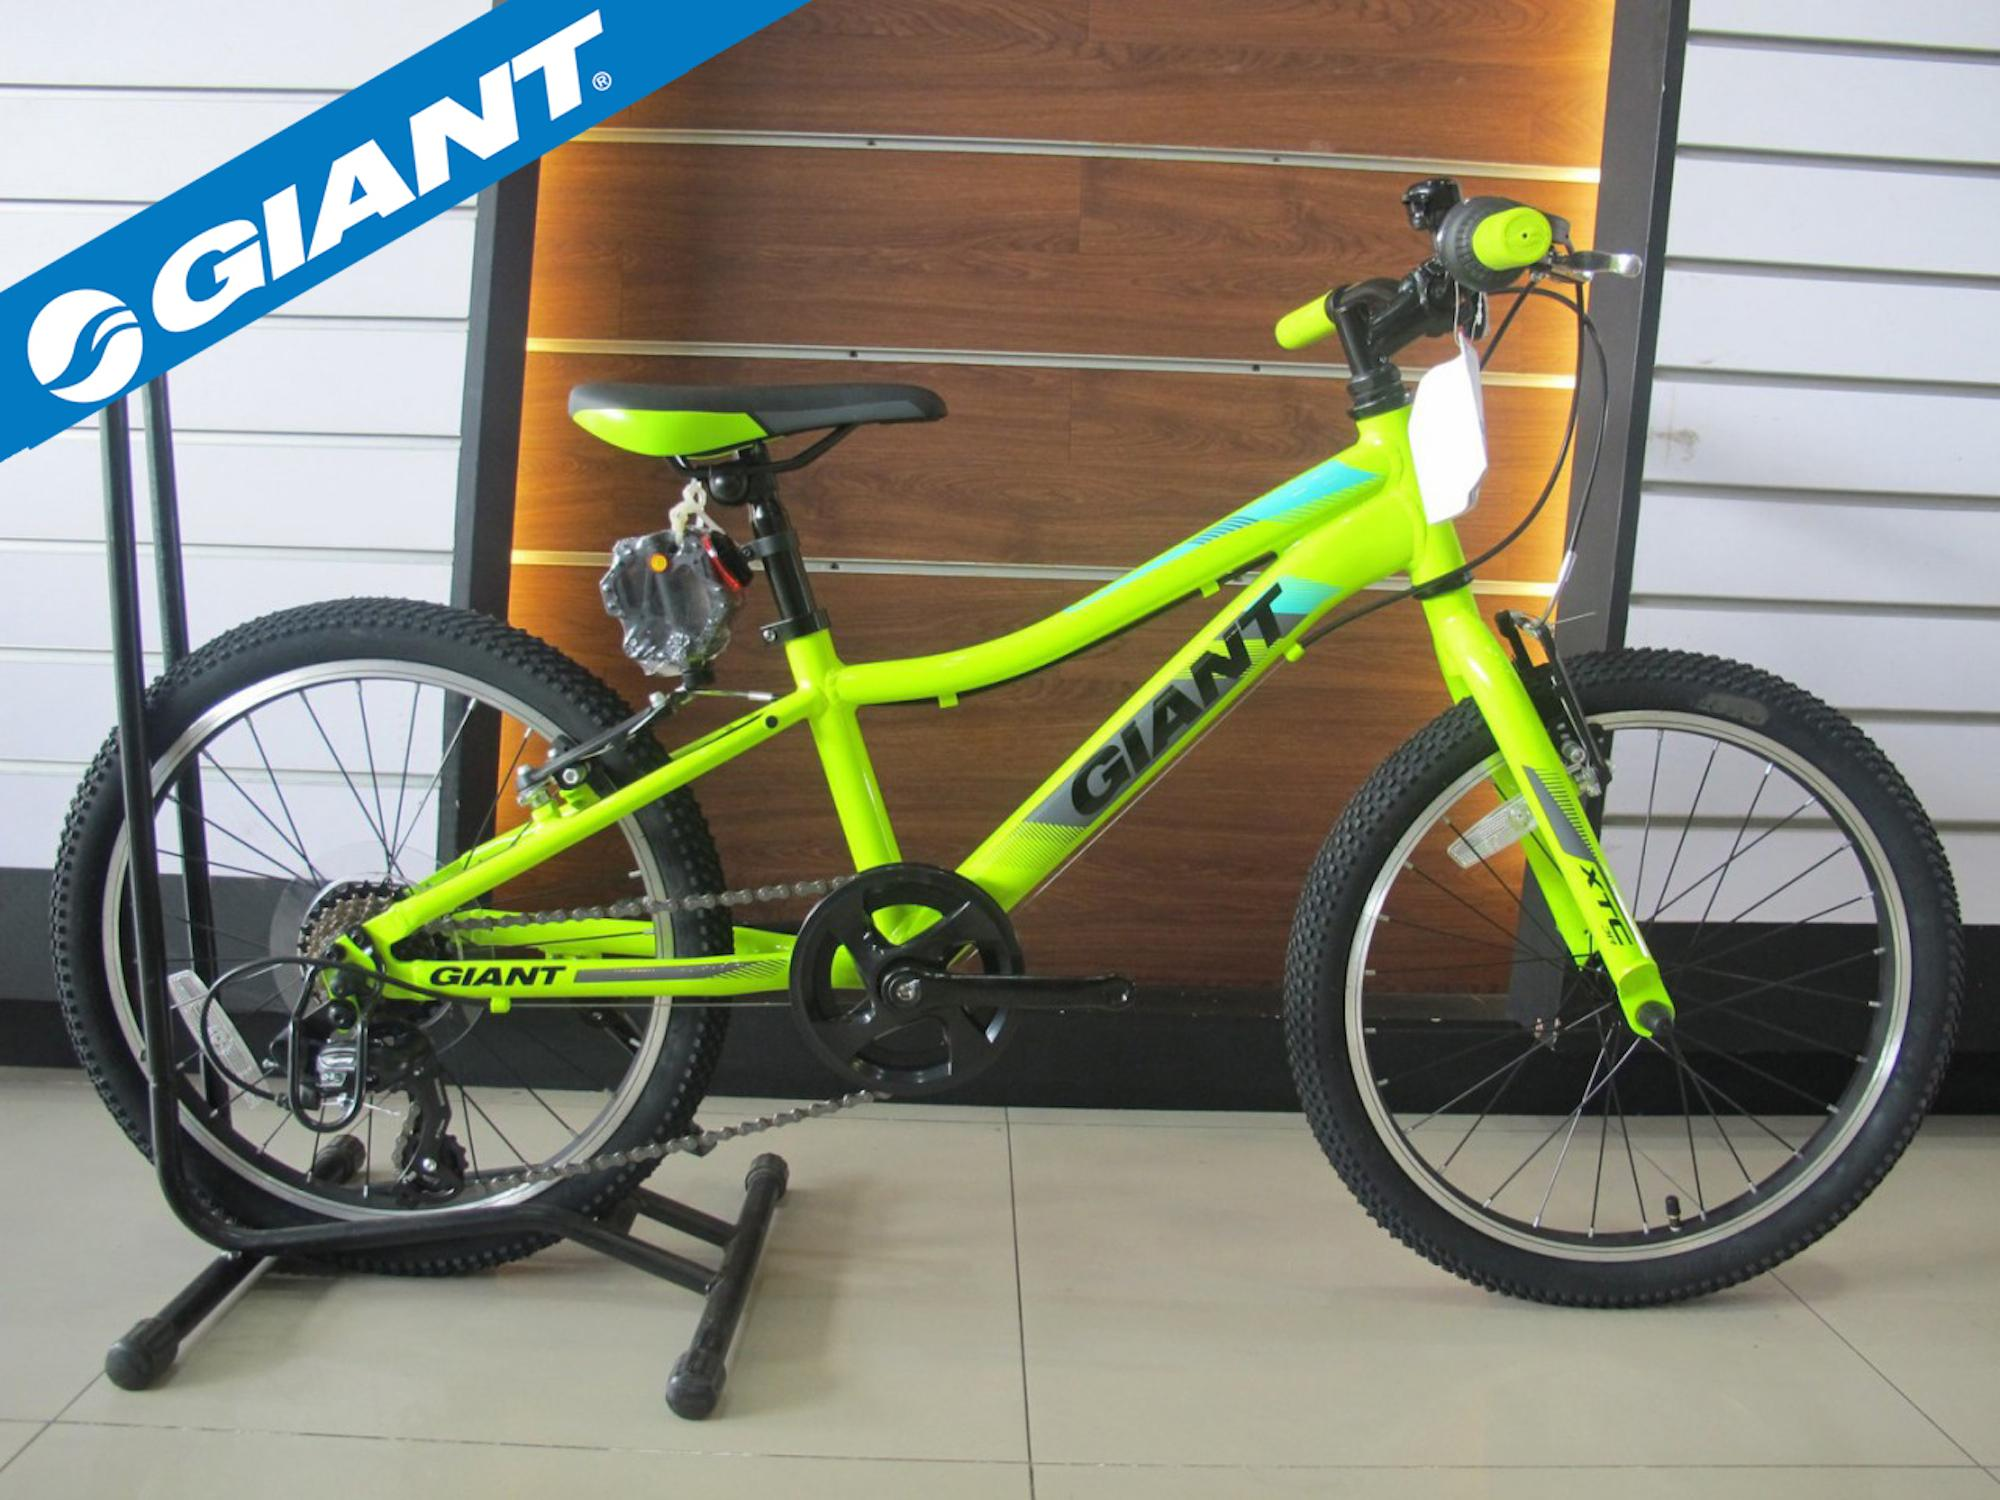 1f7af71547a Giant Philippines - Giant Mountain Bike for sale - prices   reviews ...